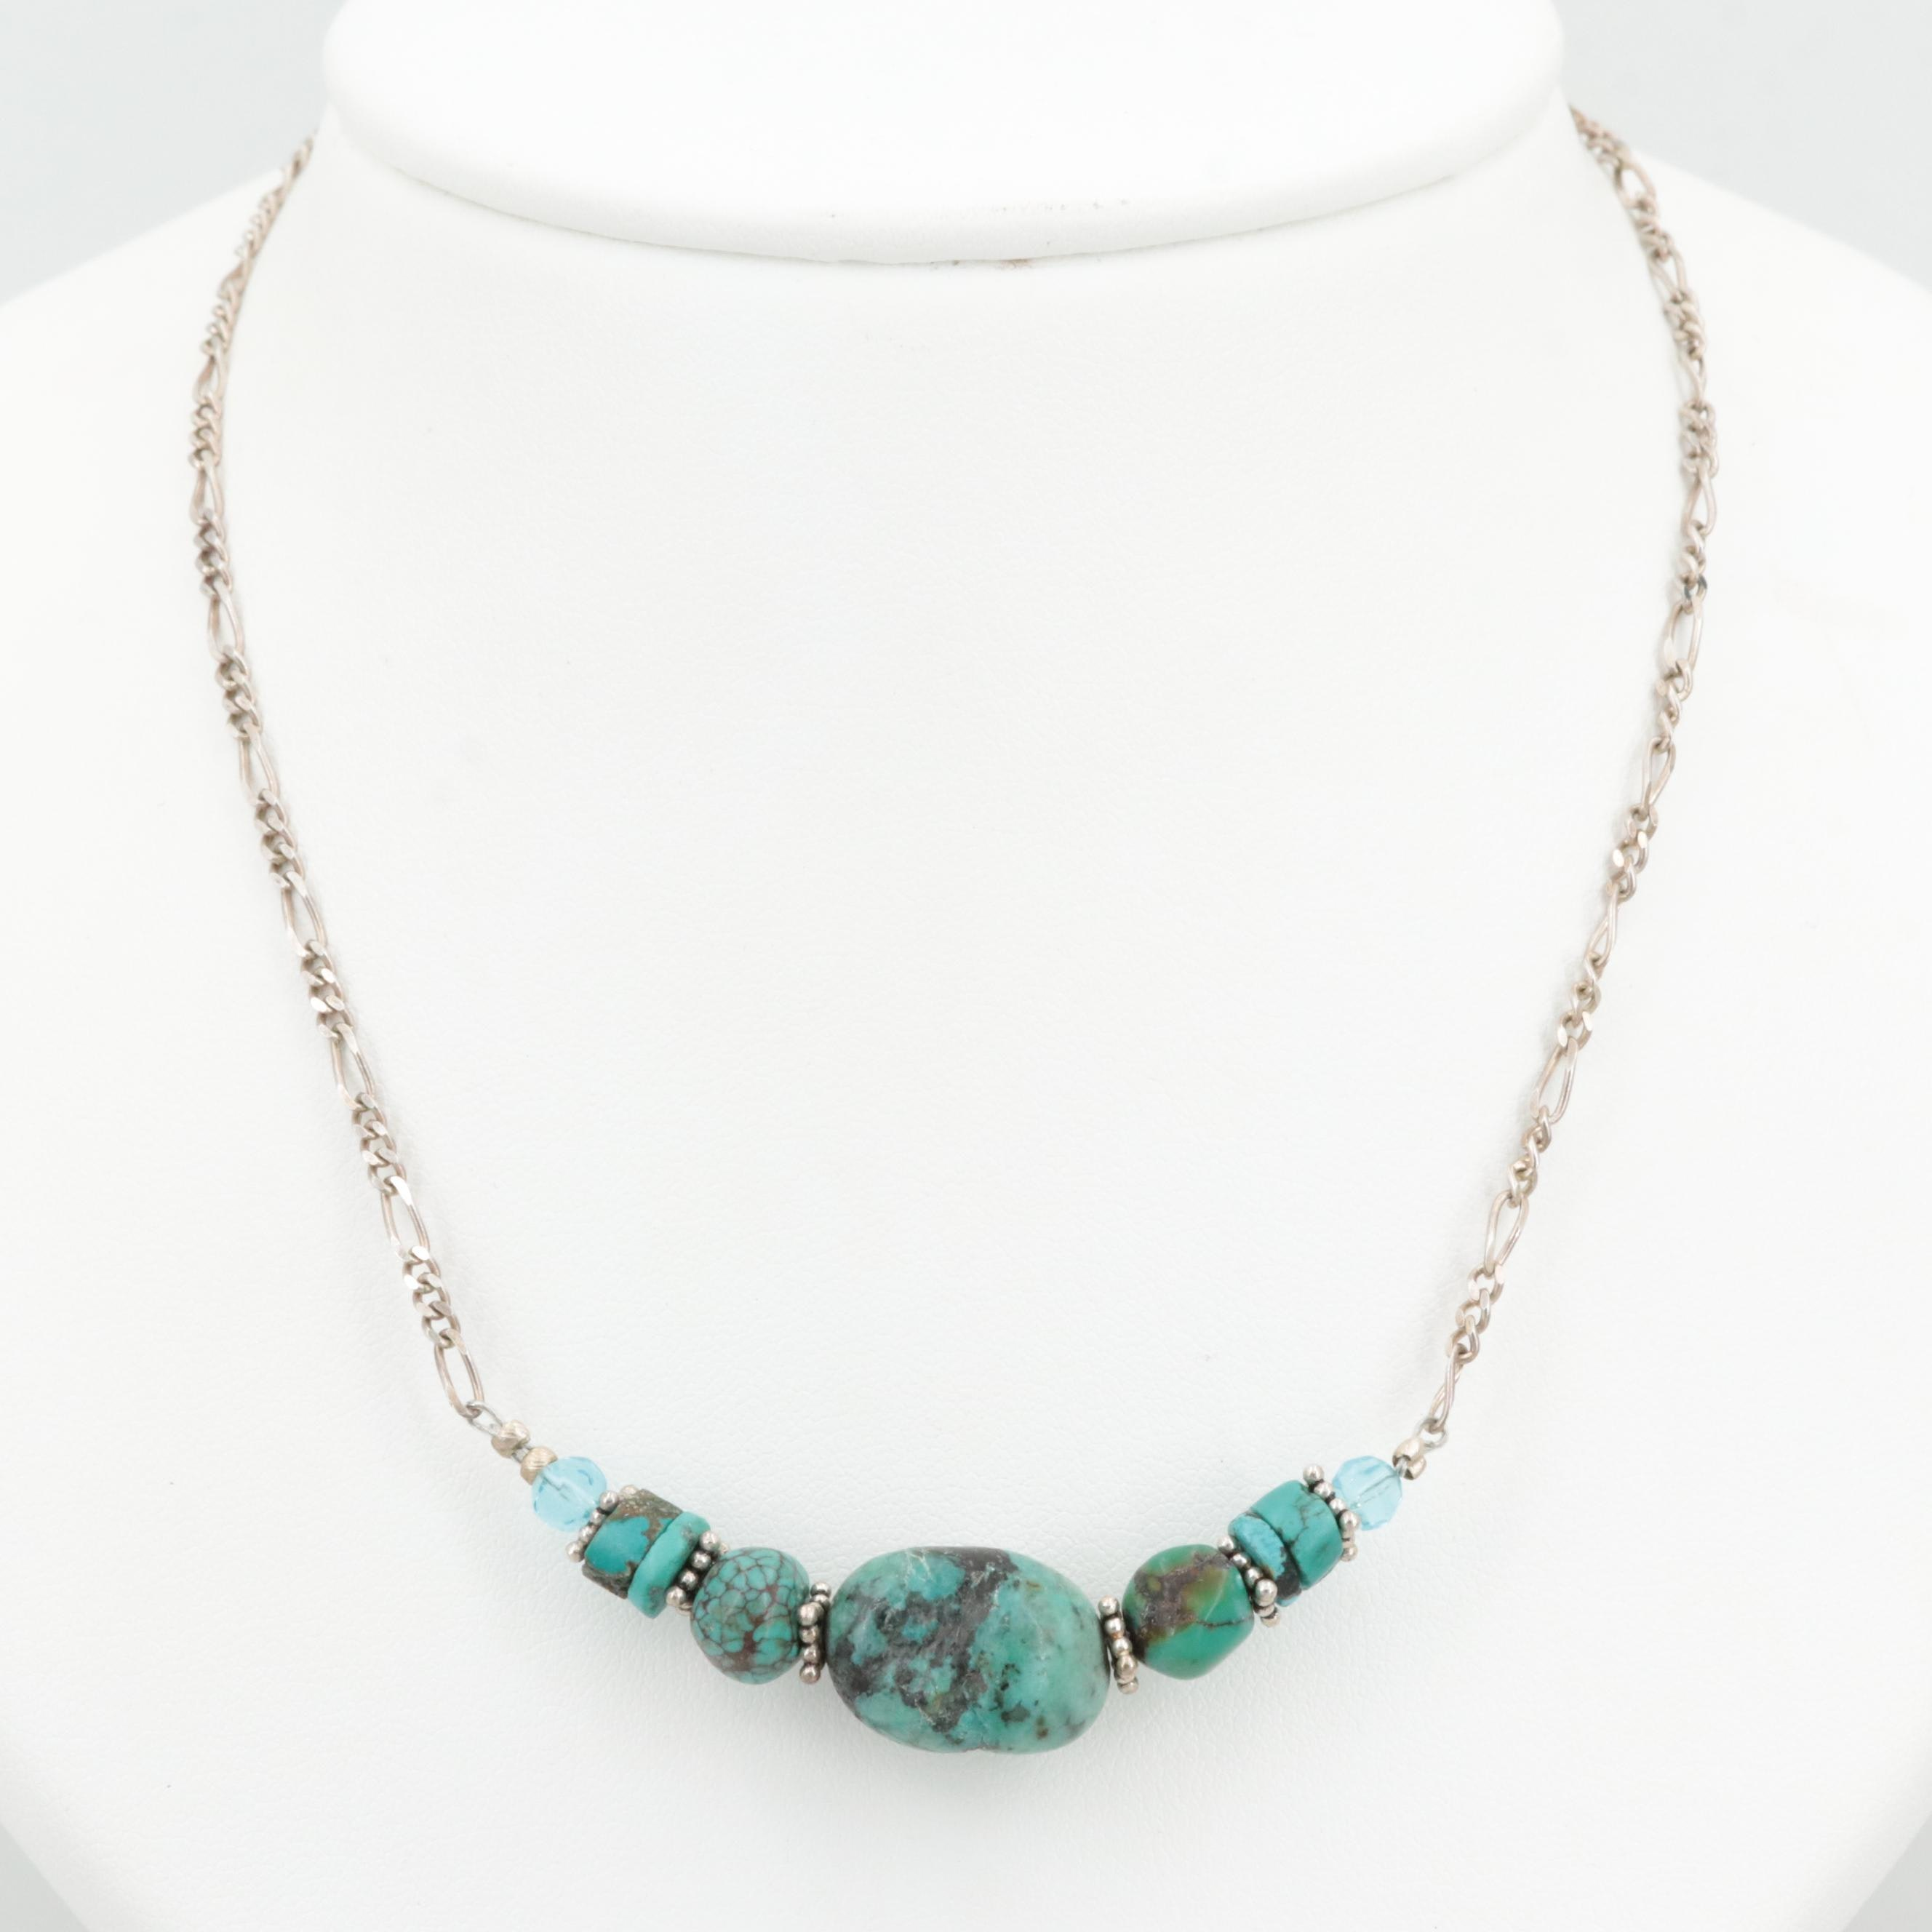 Sterling Silver Turquoise Necklace with Faceted Glass Accents